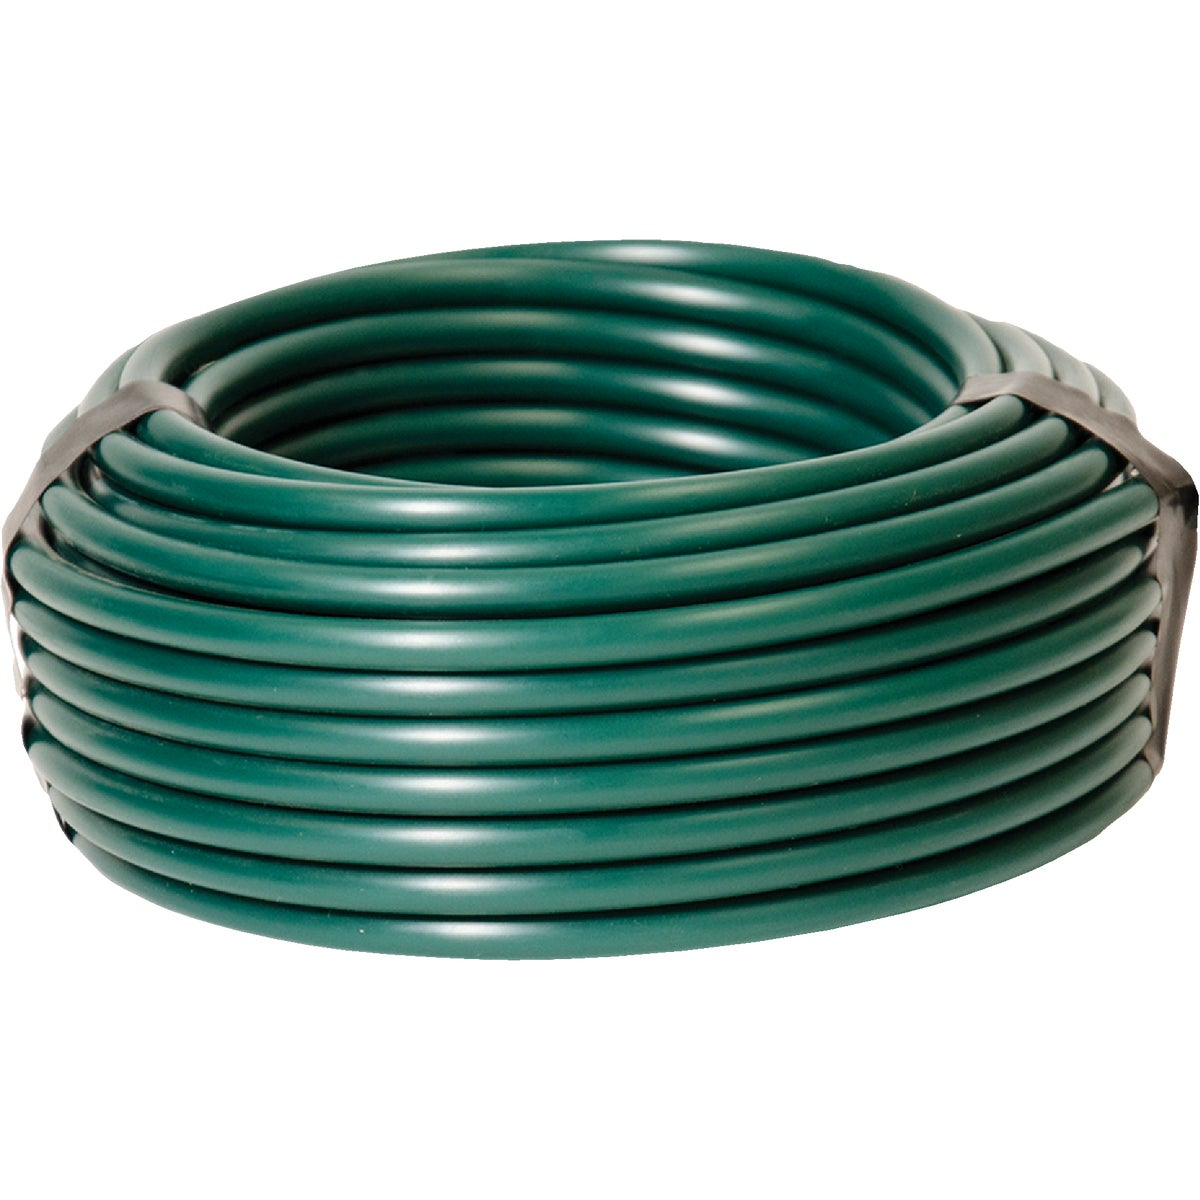 "1/4"" 50' GREEN TUBING - R256DT by Raindrip Inc"